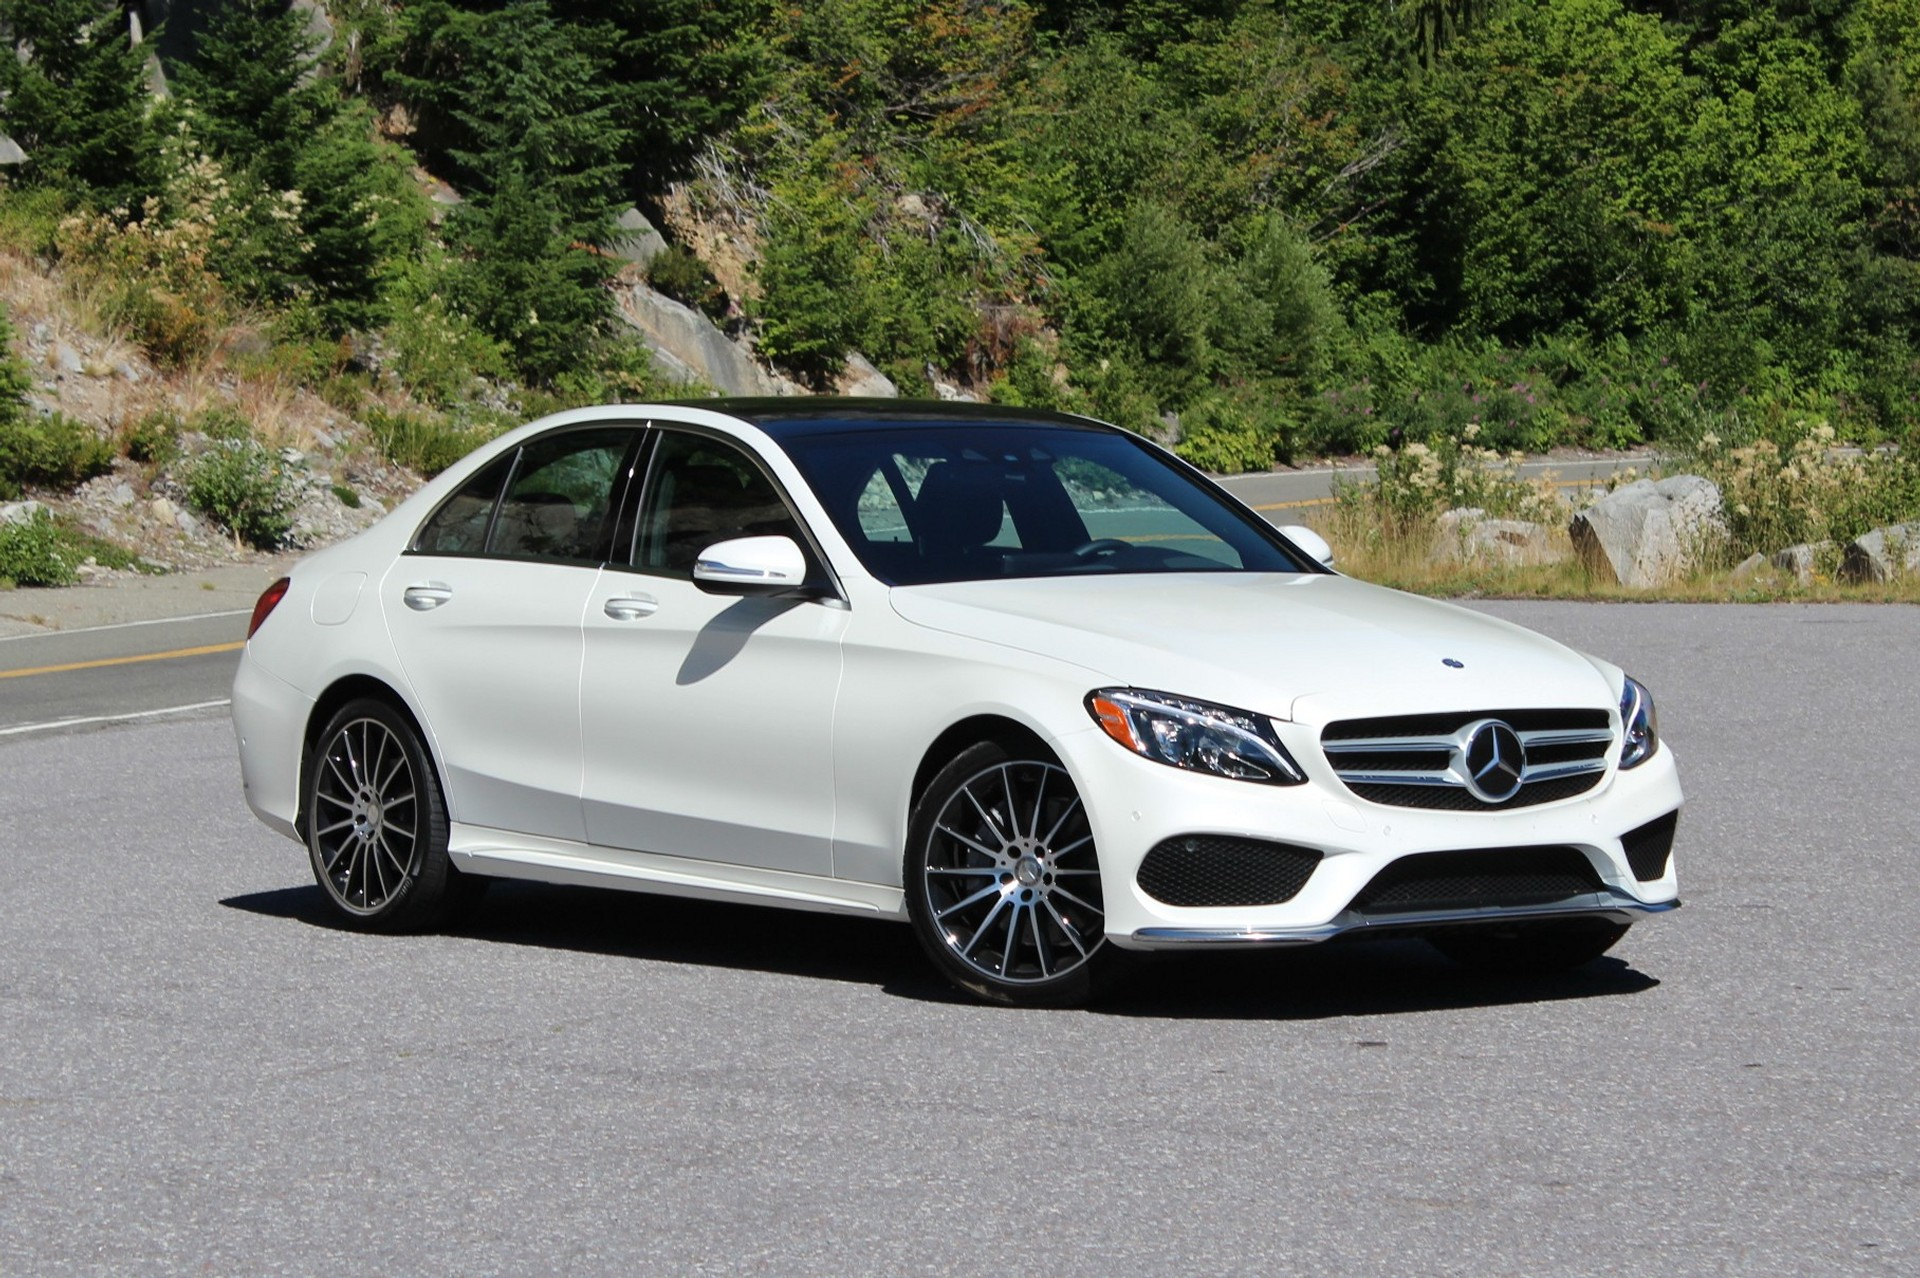 2015 mercedes benz c class first drive. Black Bedroom Furniture Sets. Home Design Ideas